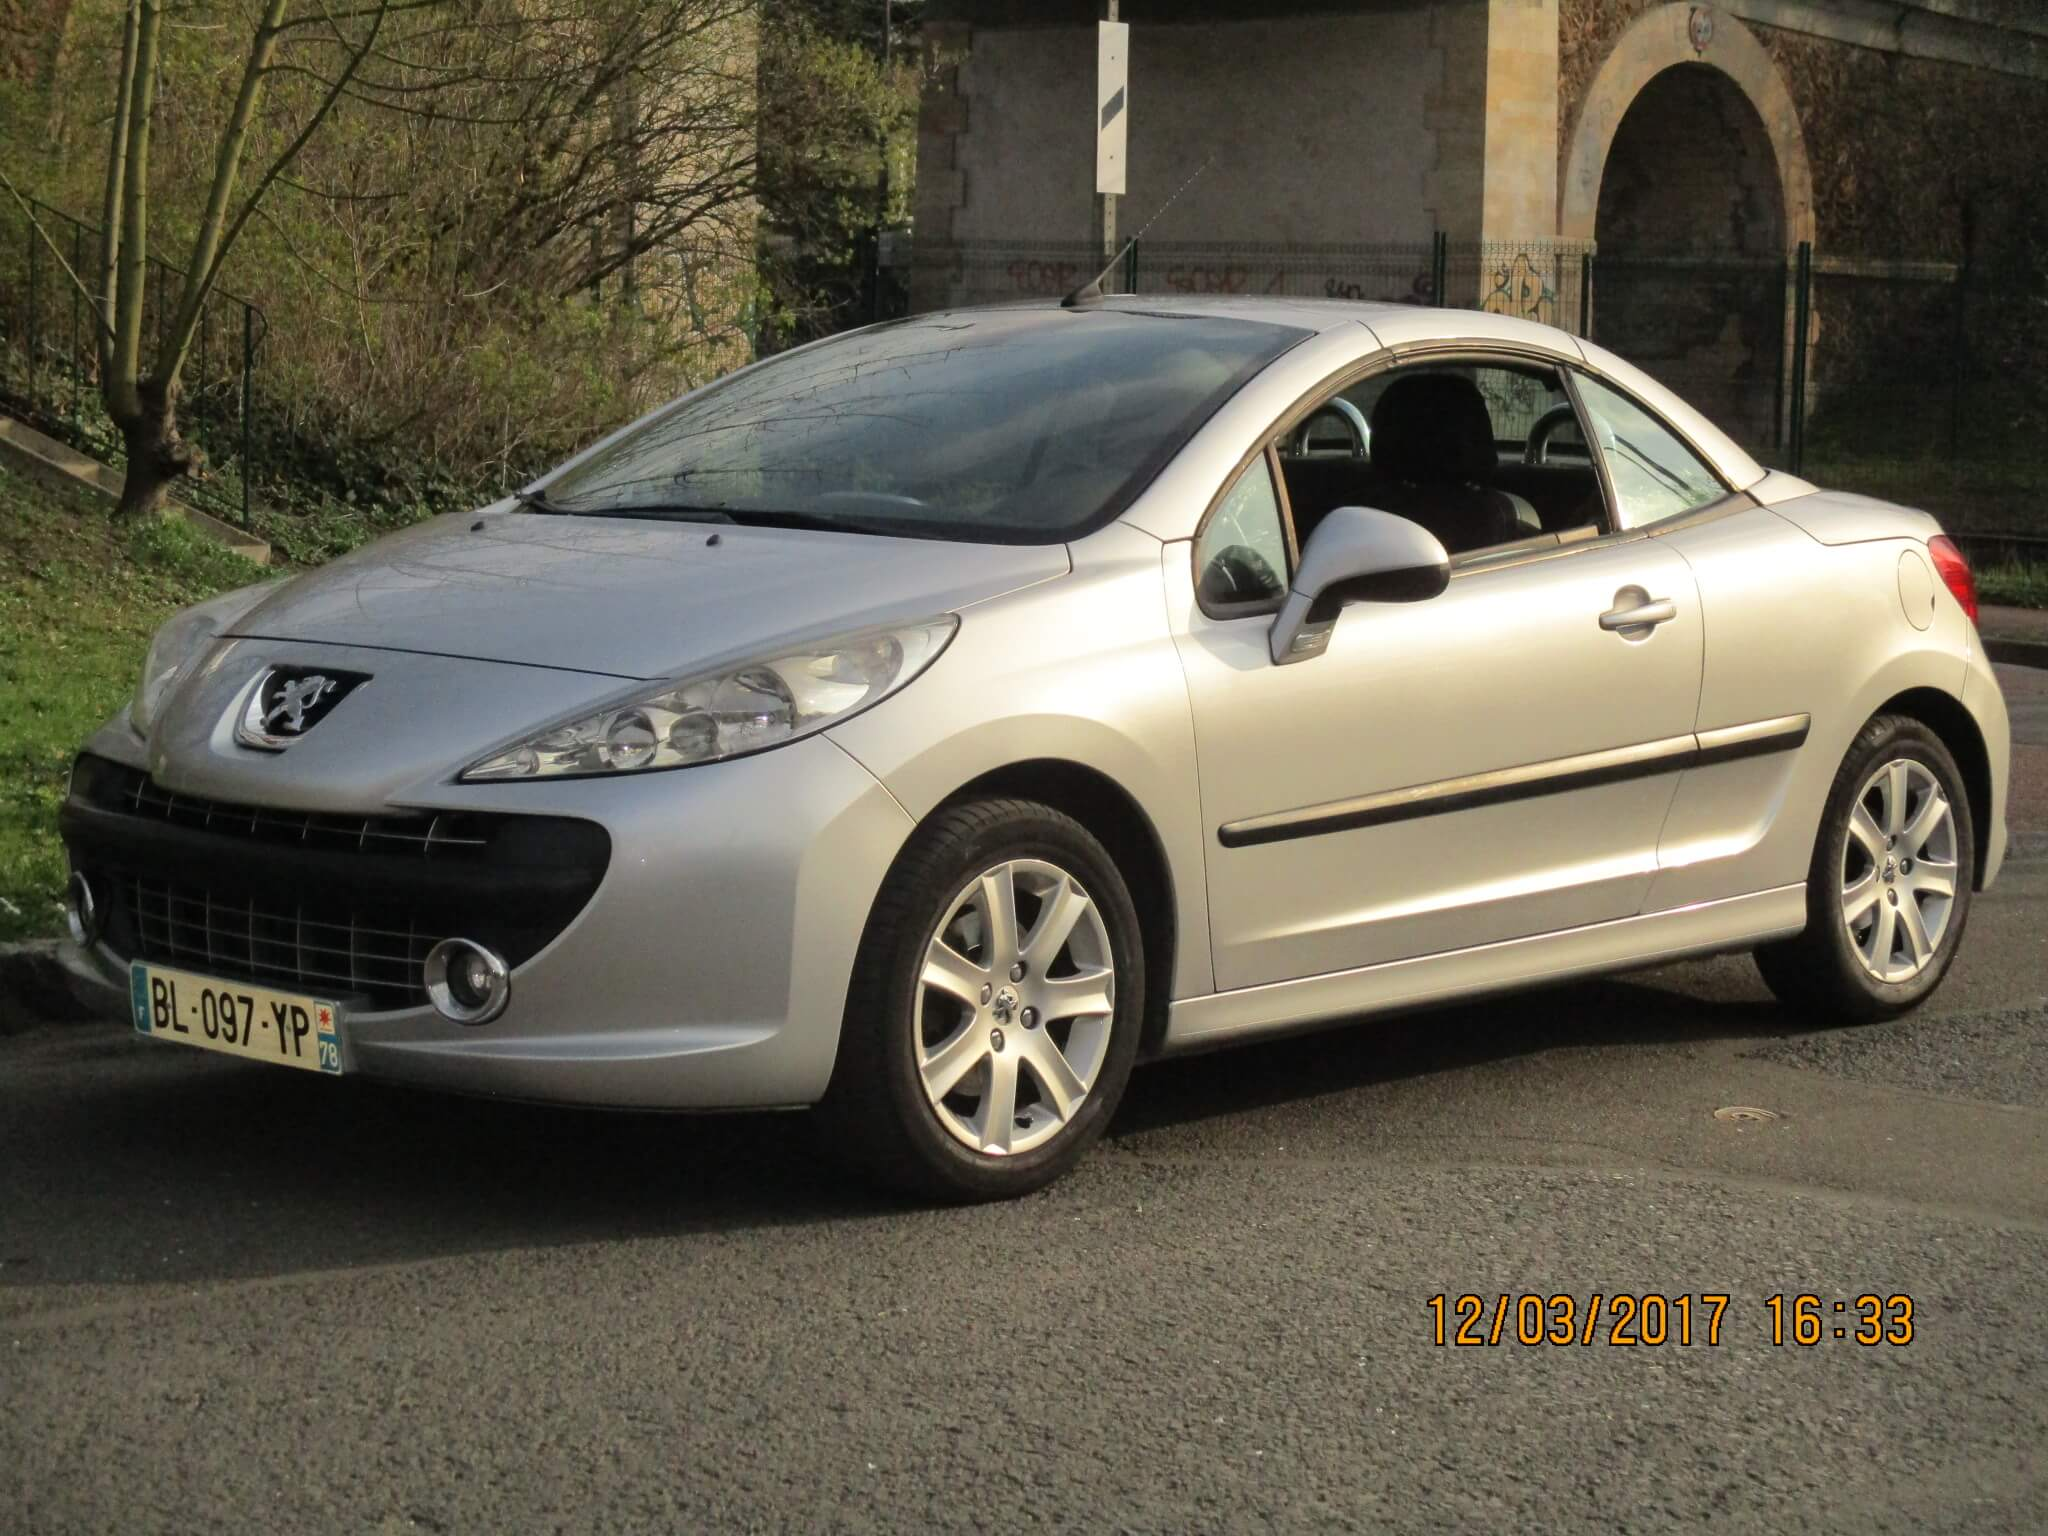 voiture occasion peugeot 207 cc labellis e vendre montesson ref 1546. Black Bedroom Furniture Sets. Home Design Ideas